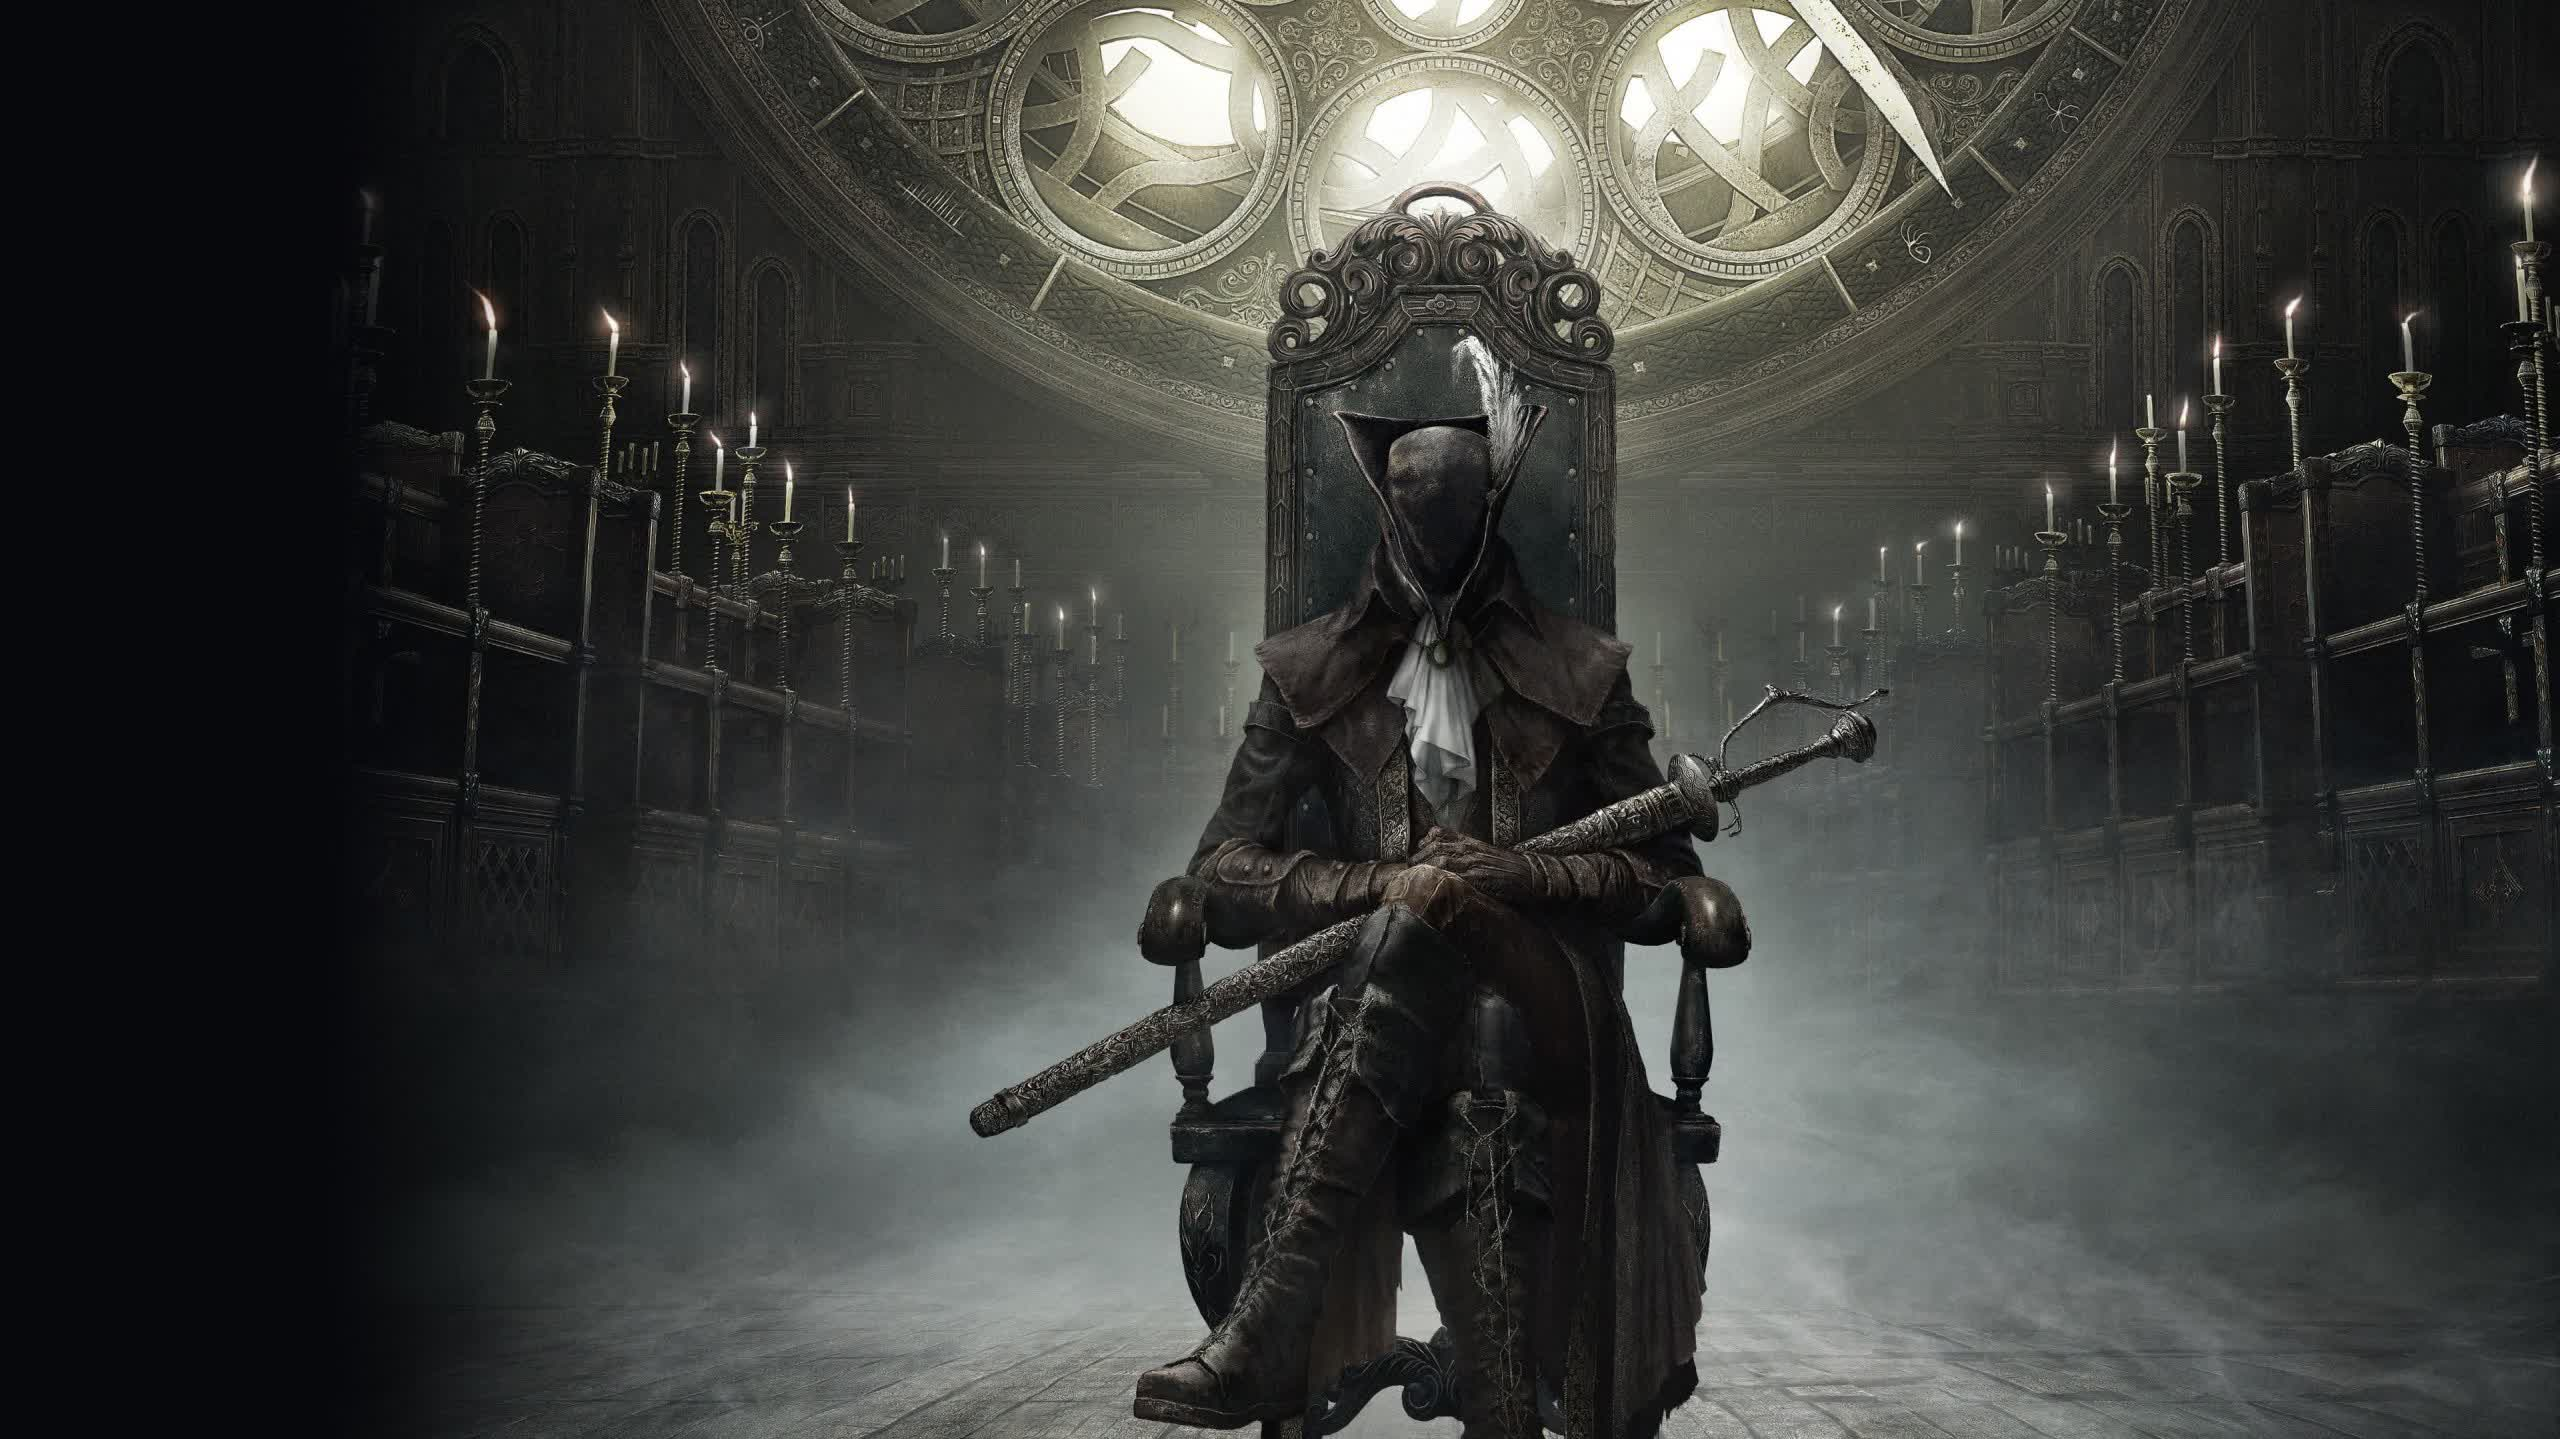 Bluepoint reportedly has a Bloodborne remaster and a sequel in the works for PlayStation 5